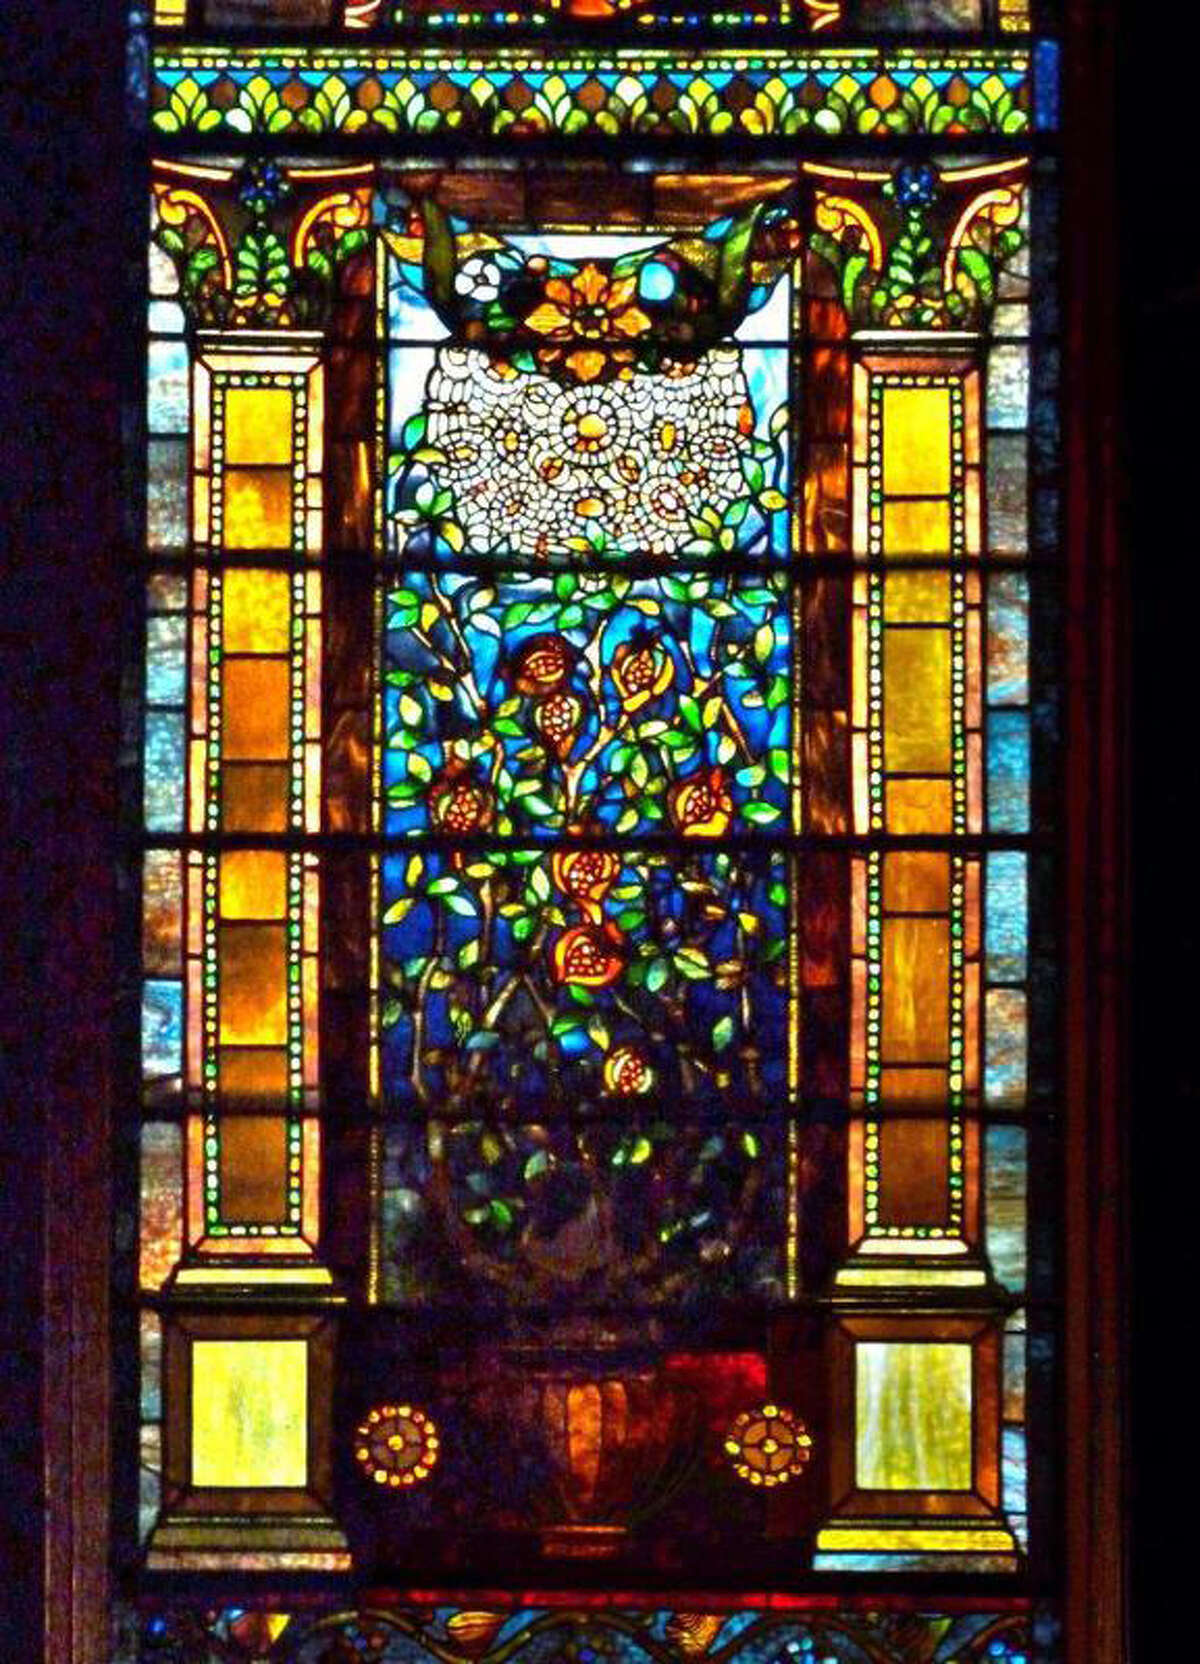 Photo by Ned Pratt The Gardner Earl Chapel at Oakwood Cemetery in Troy features eight original windows by Louis Comfort Tiffany, designed in the late 1800s for the Chapel. The Chapel was commissioned by the Earl family, prosperous paper collar manufacturers, as a tribute to their son who died very young.